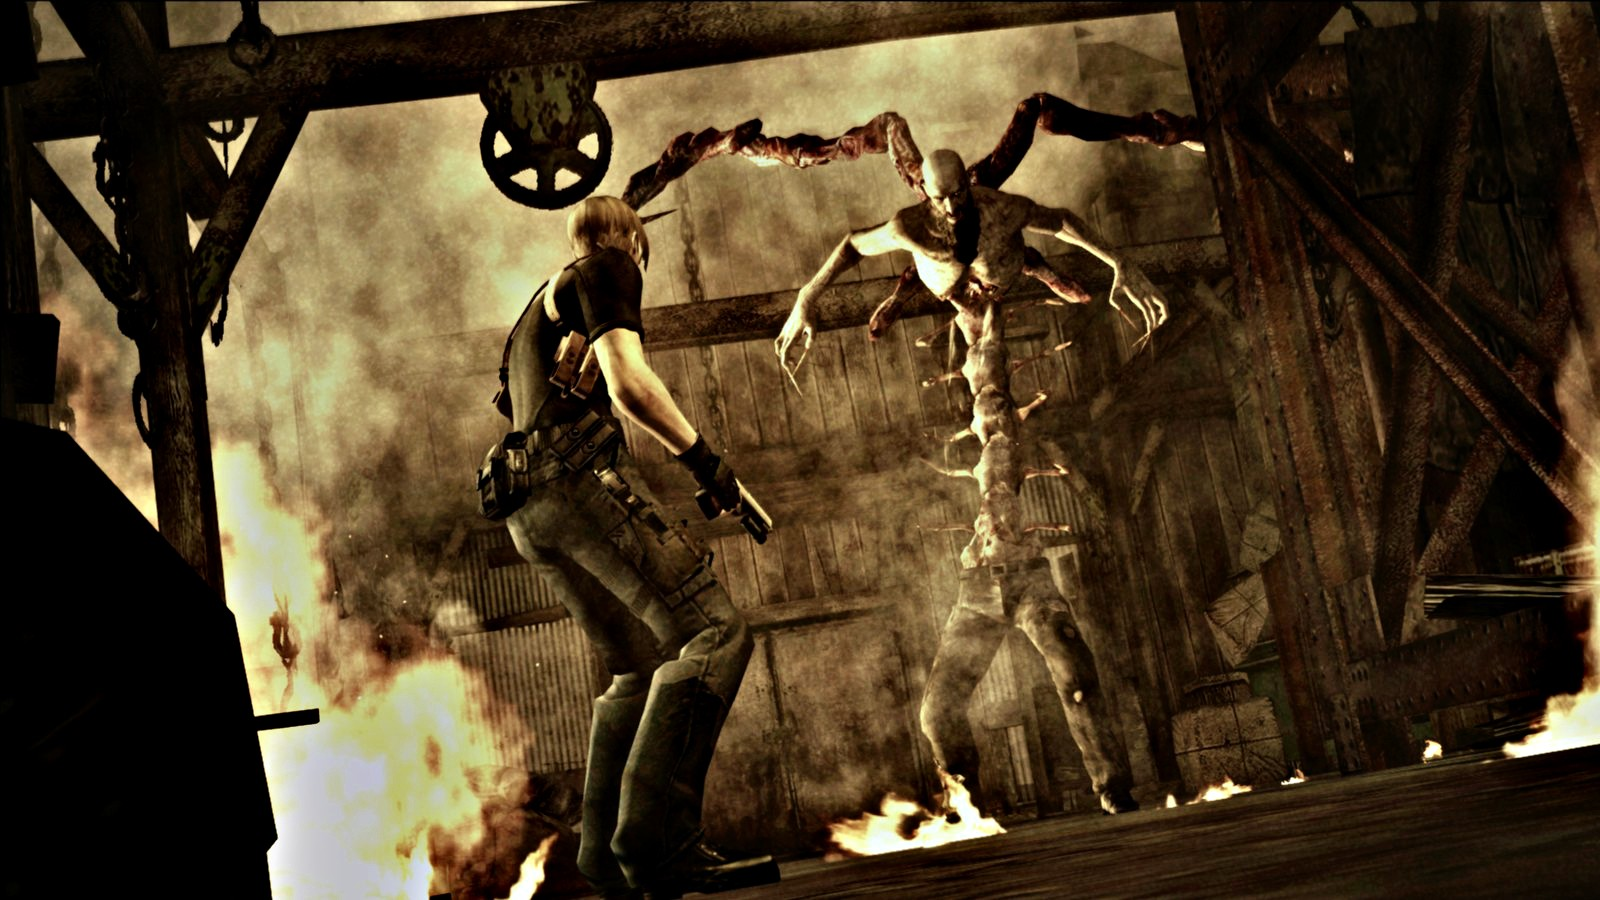 resident evil 4 / biohazard 4 (Steam KEY, Region Free)